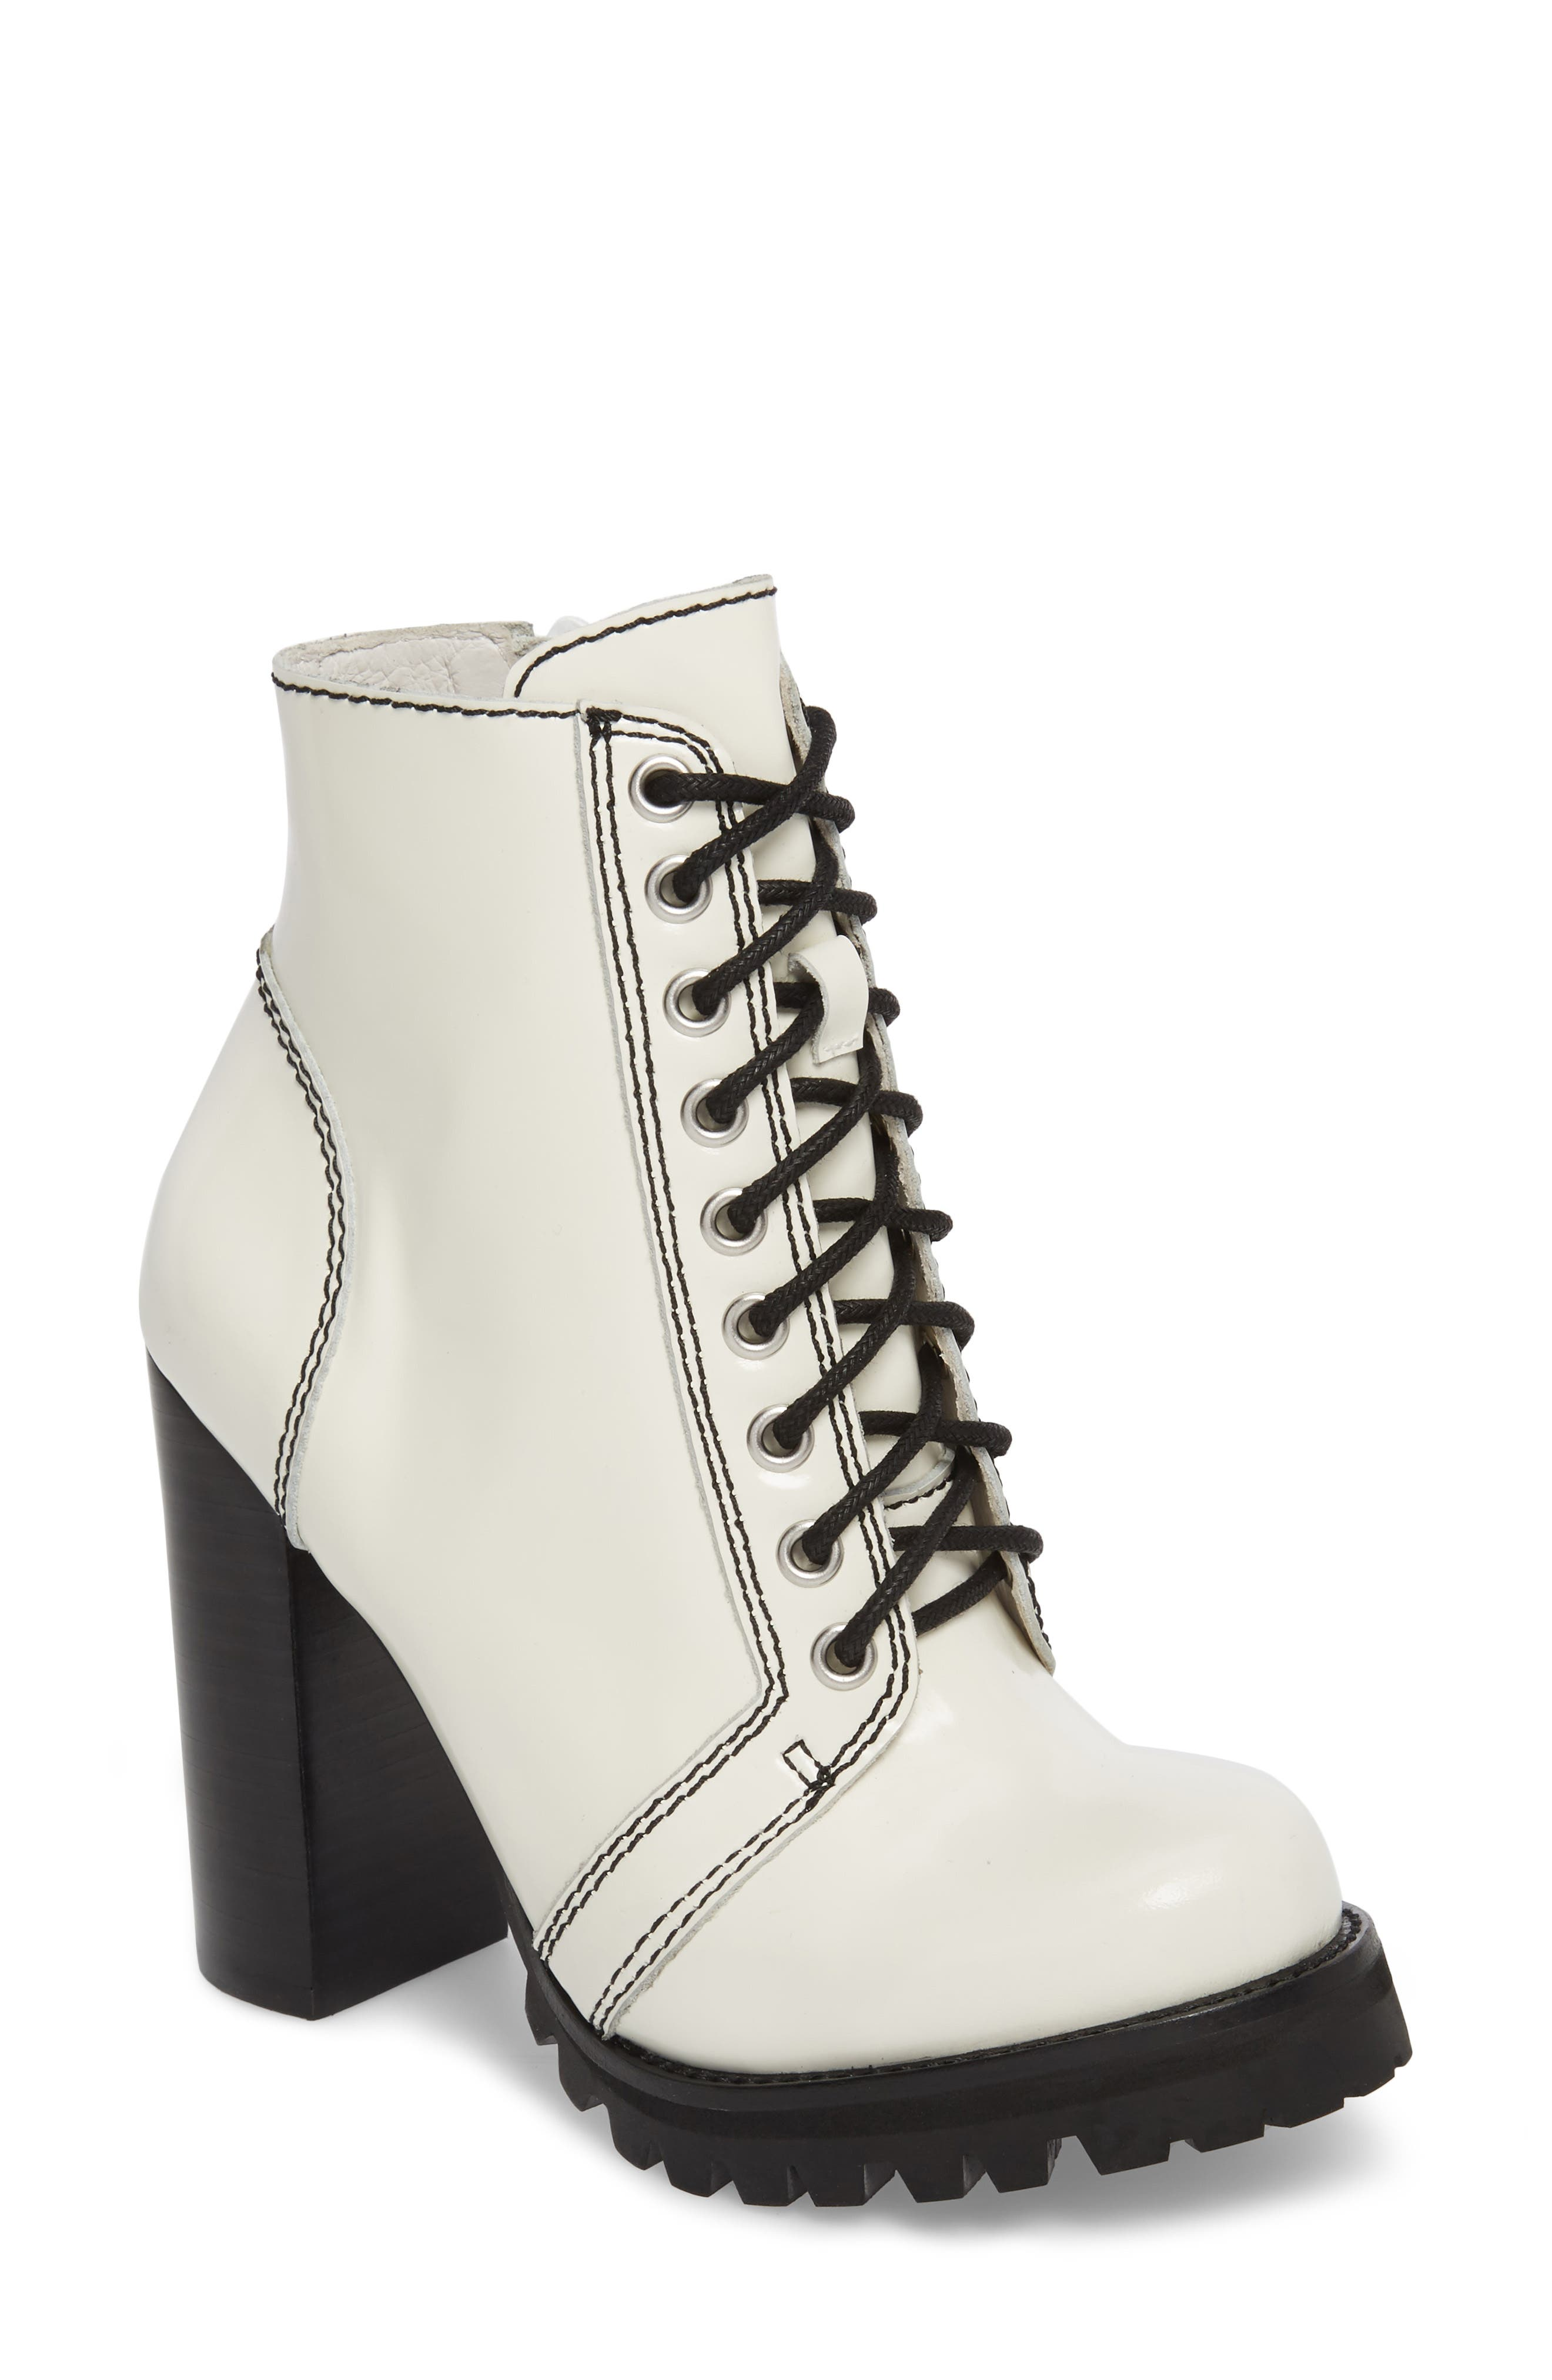 'Legion' High Heel Boot,                             Main thumbnail 1, color,                             White Box Black